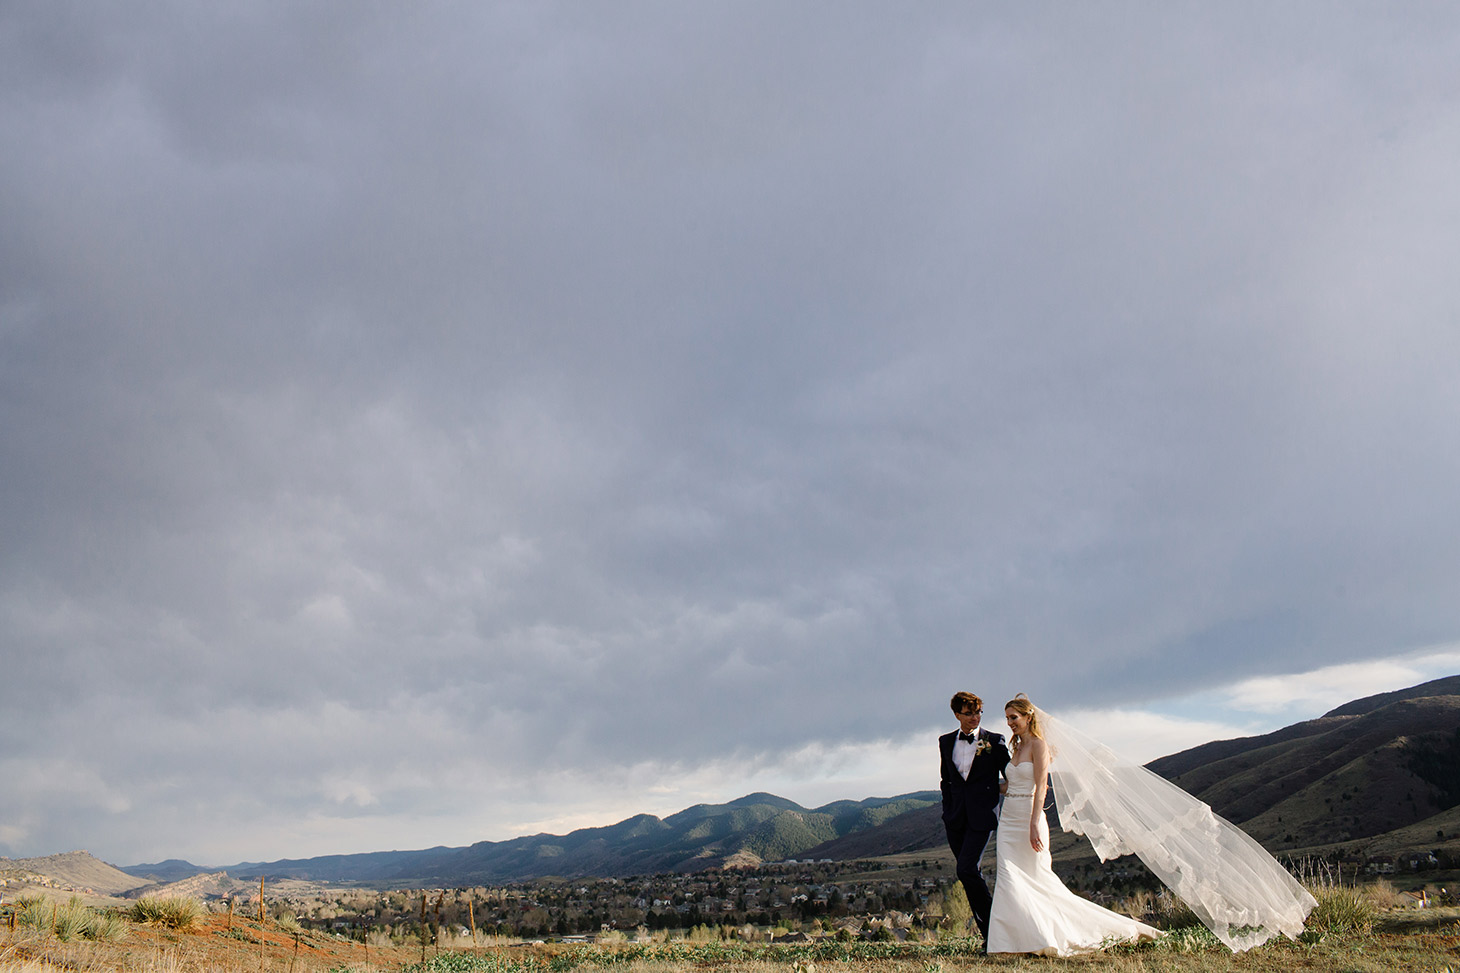 Megan-Newton-Photography-Best-Wedding-Photos-2015-034